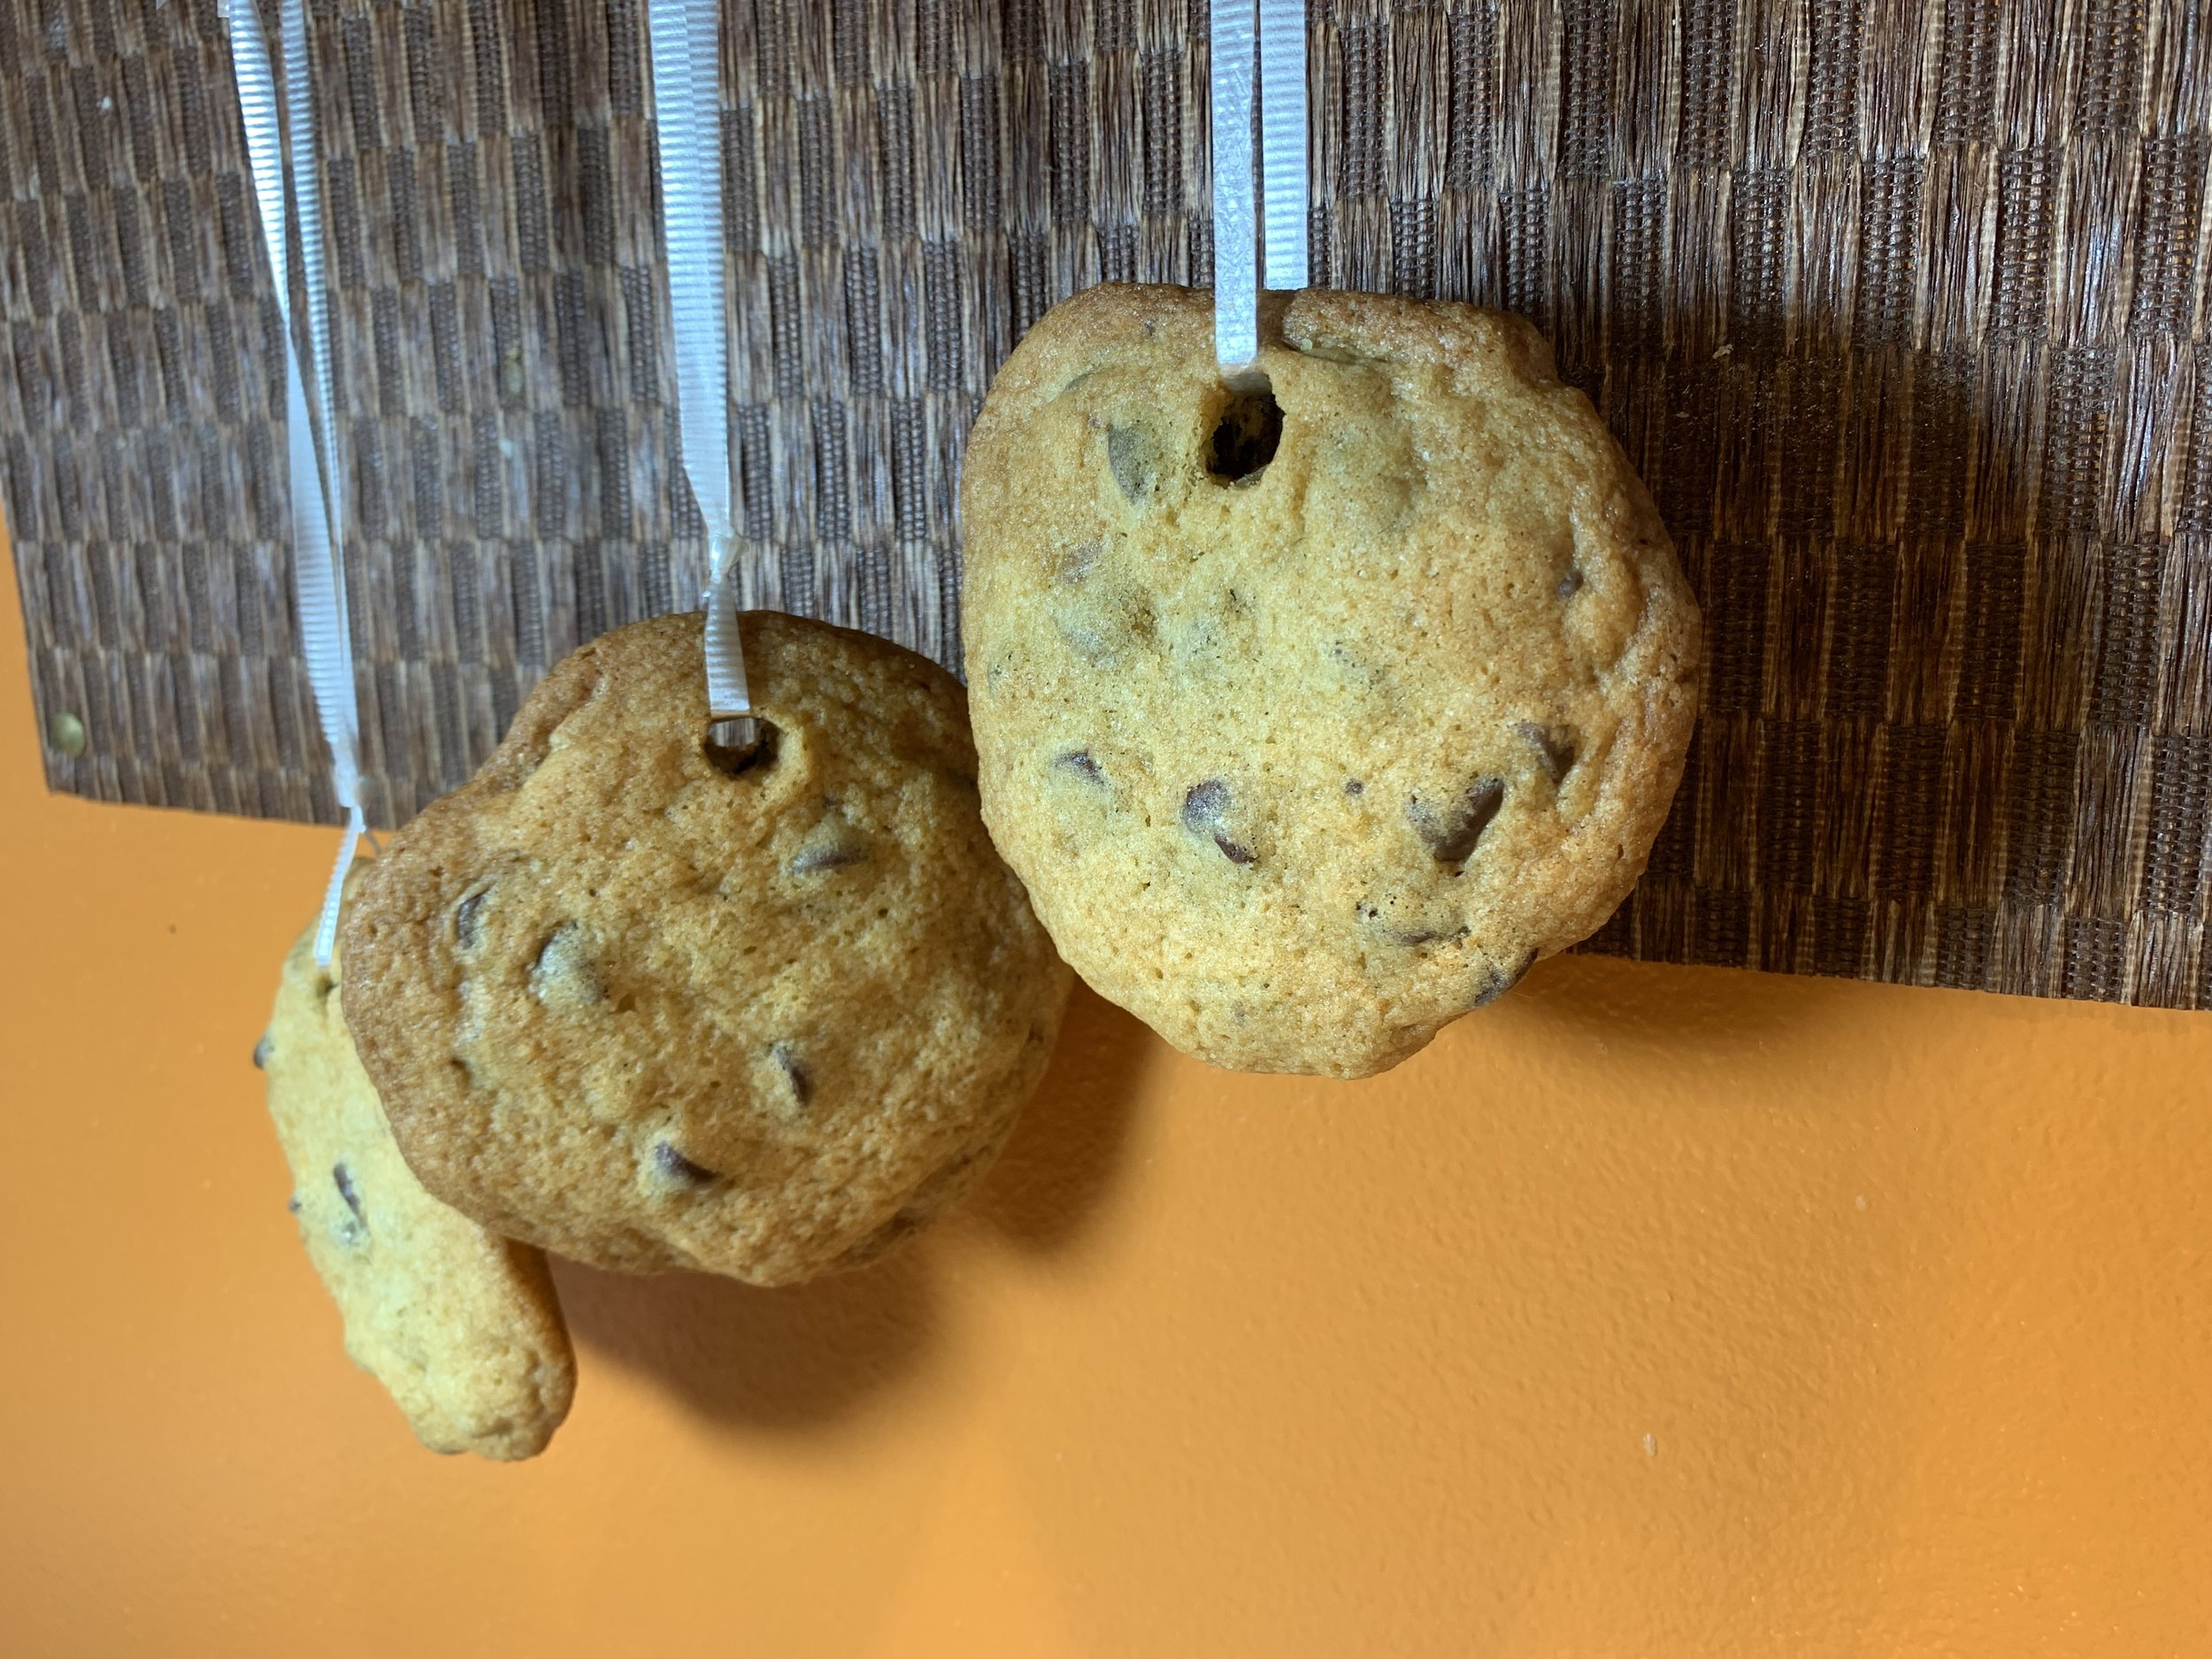 Chocolate chip cookies with 63% chocolate - by Guittard (red bag)